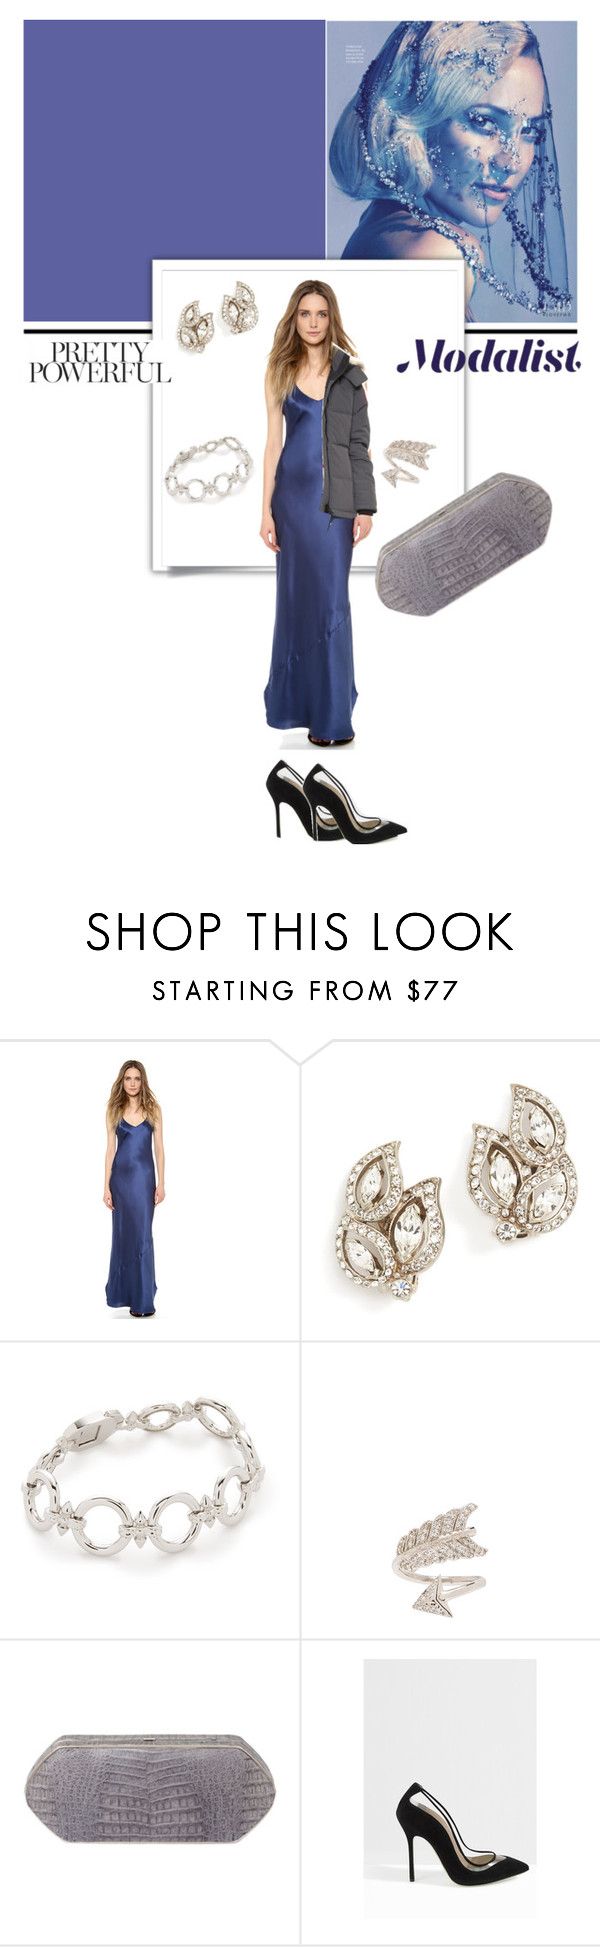 """Pretty for Party"" by modalist on Polyvore featuring Nili Lotan, Ben-Amun, Noir Jewelry, Natalie B, Hunting Season, Giannico and Canada Goose"